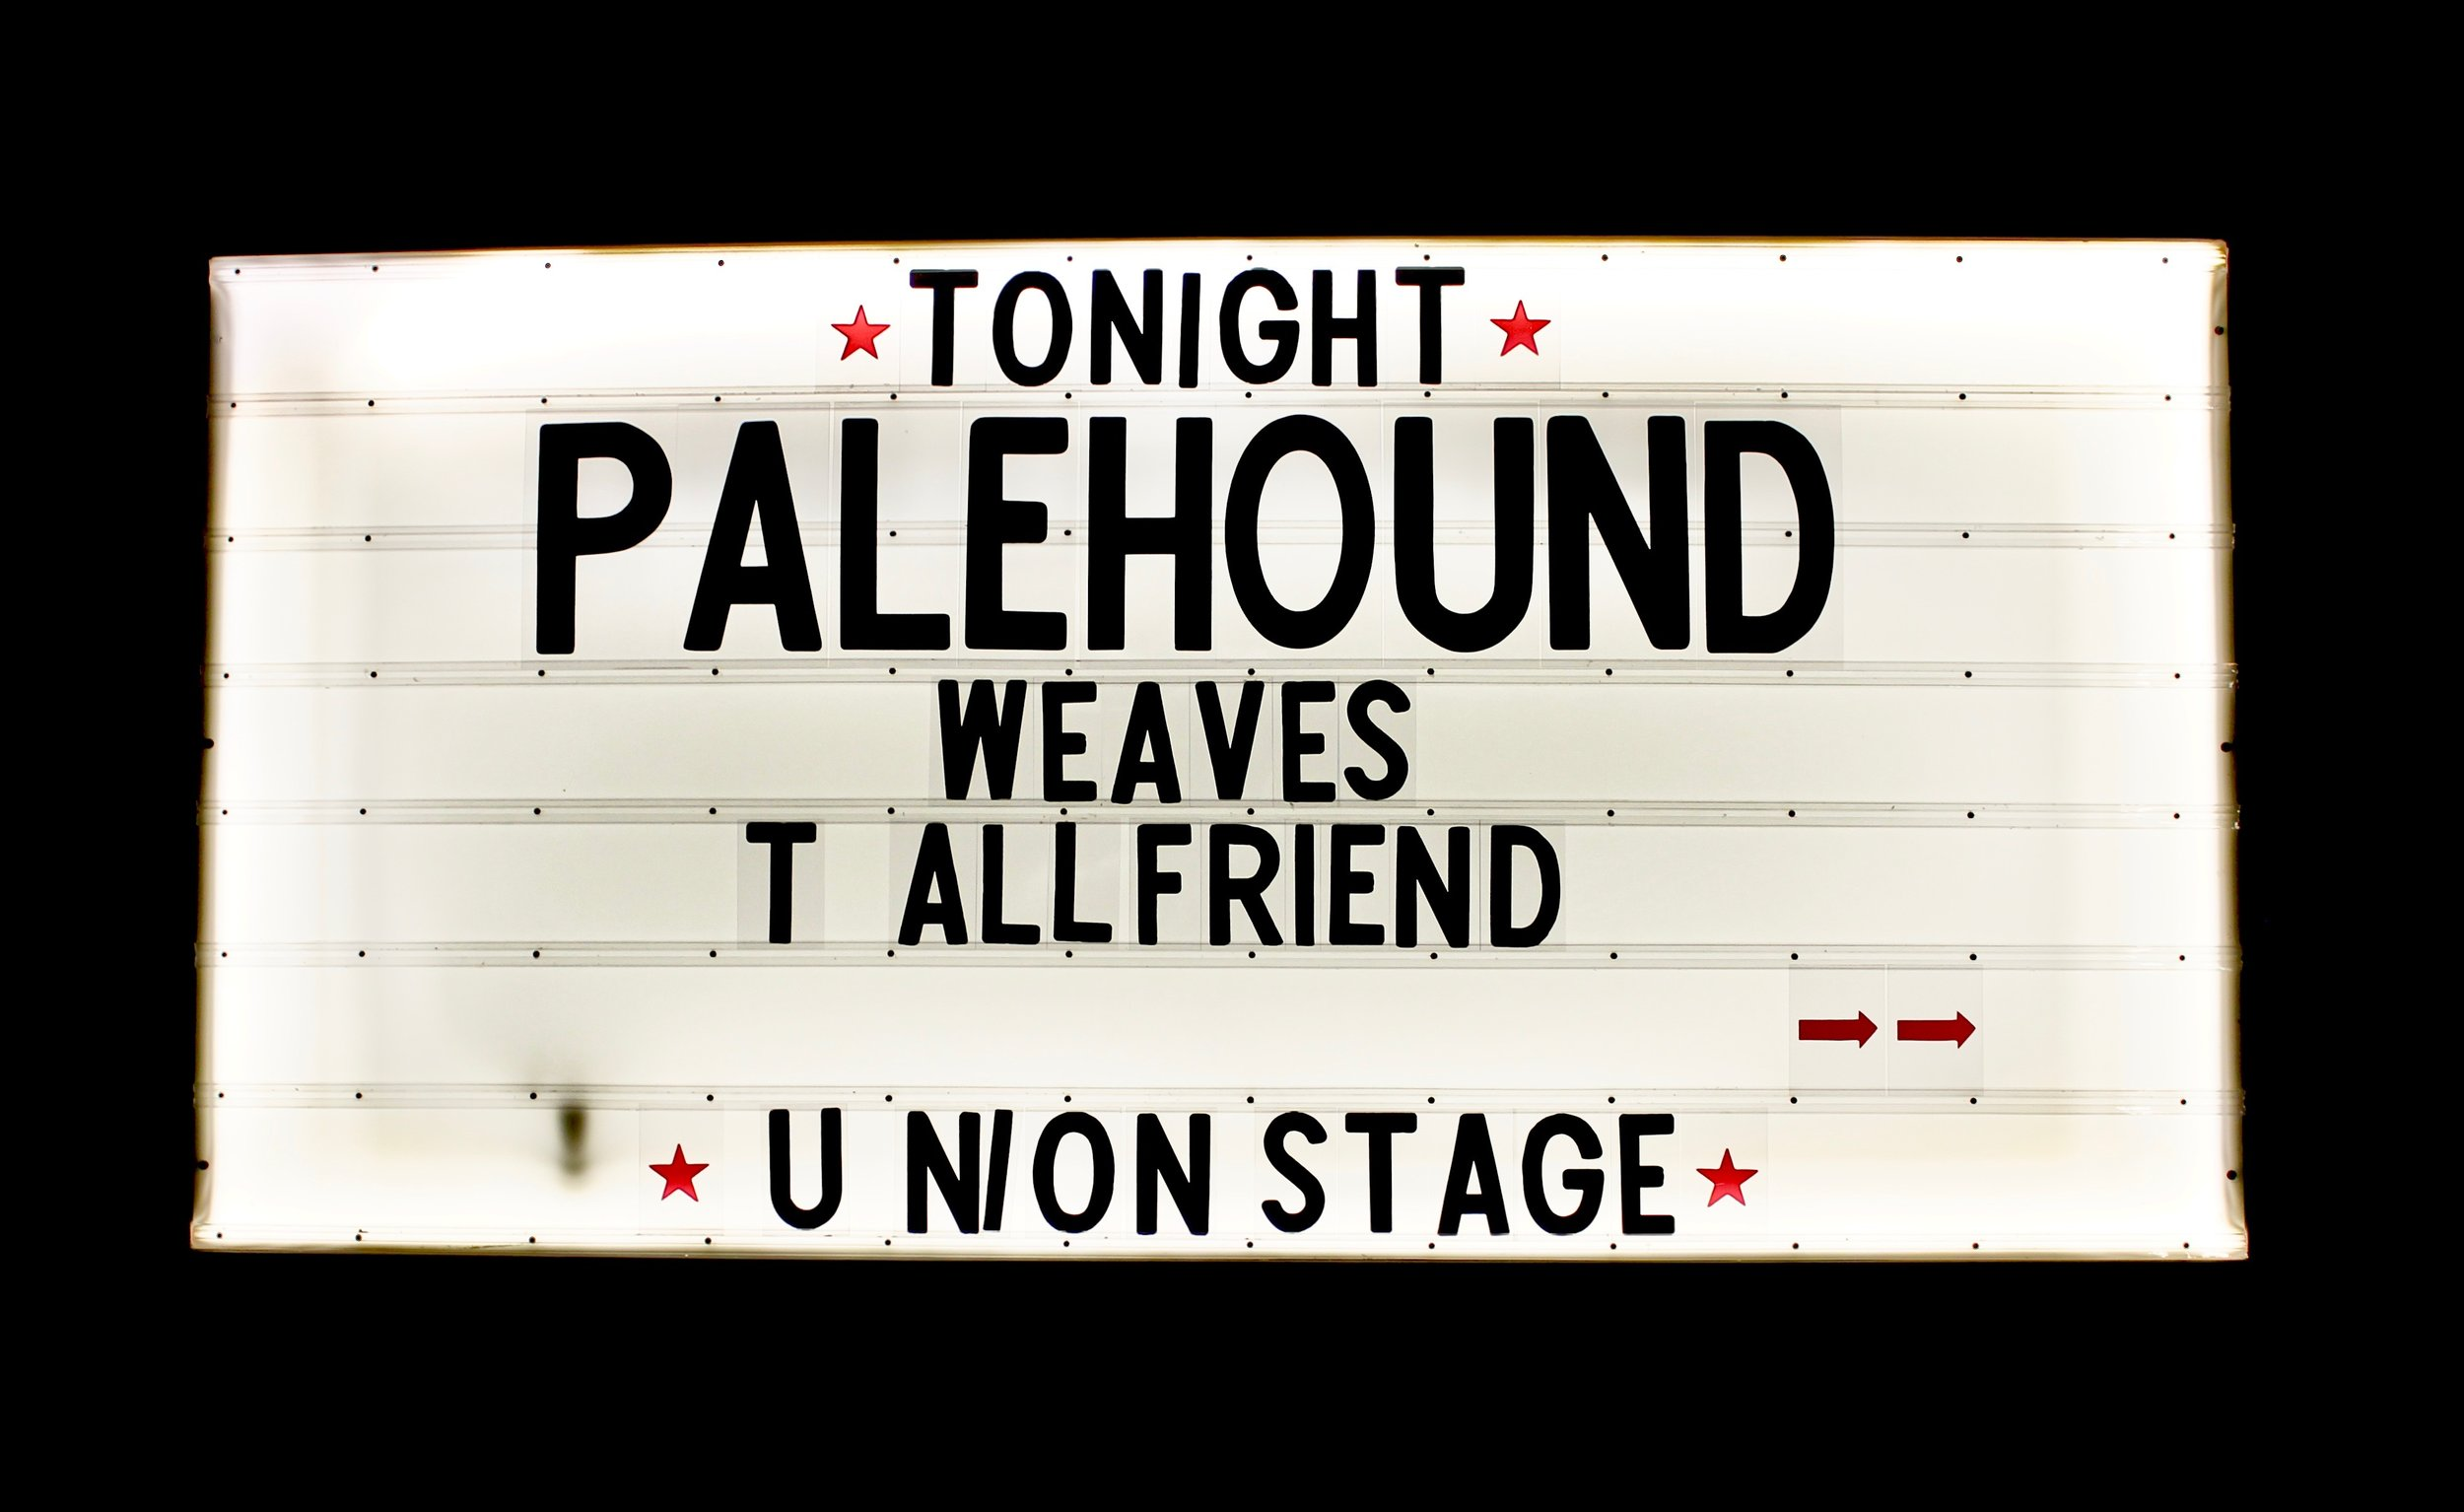 Palehound + Weaves @ Union Stage - When I went to see Palehound and Weaves on February 10th, it was my first time [at Union Stage] and I was completely blown away- both by the amazing lineup of musicians and the space itself.